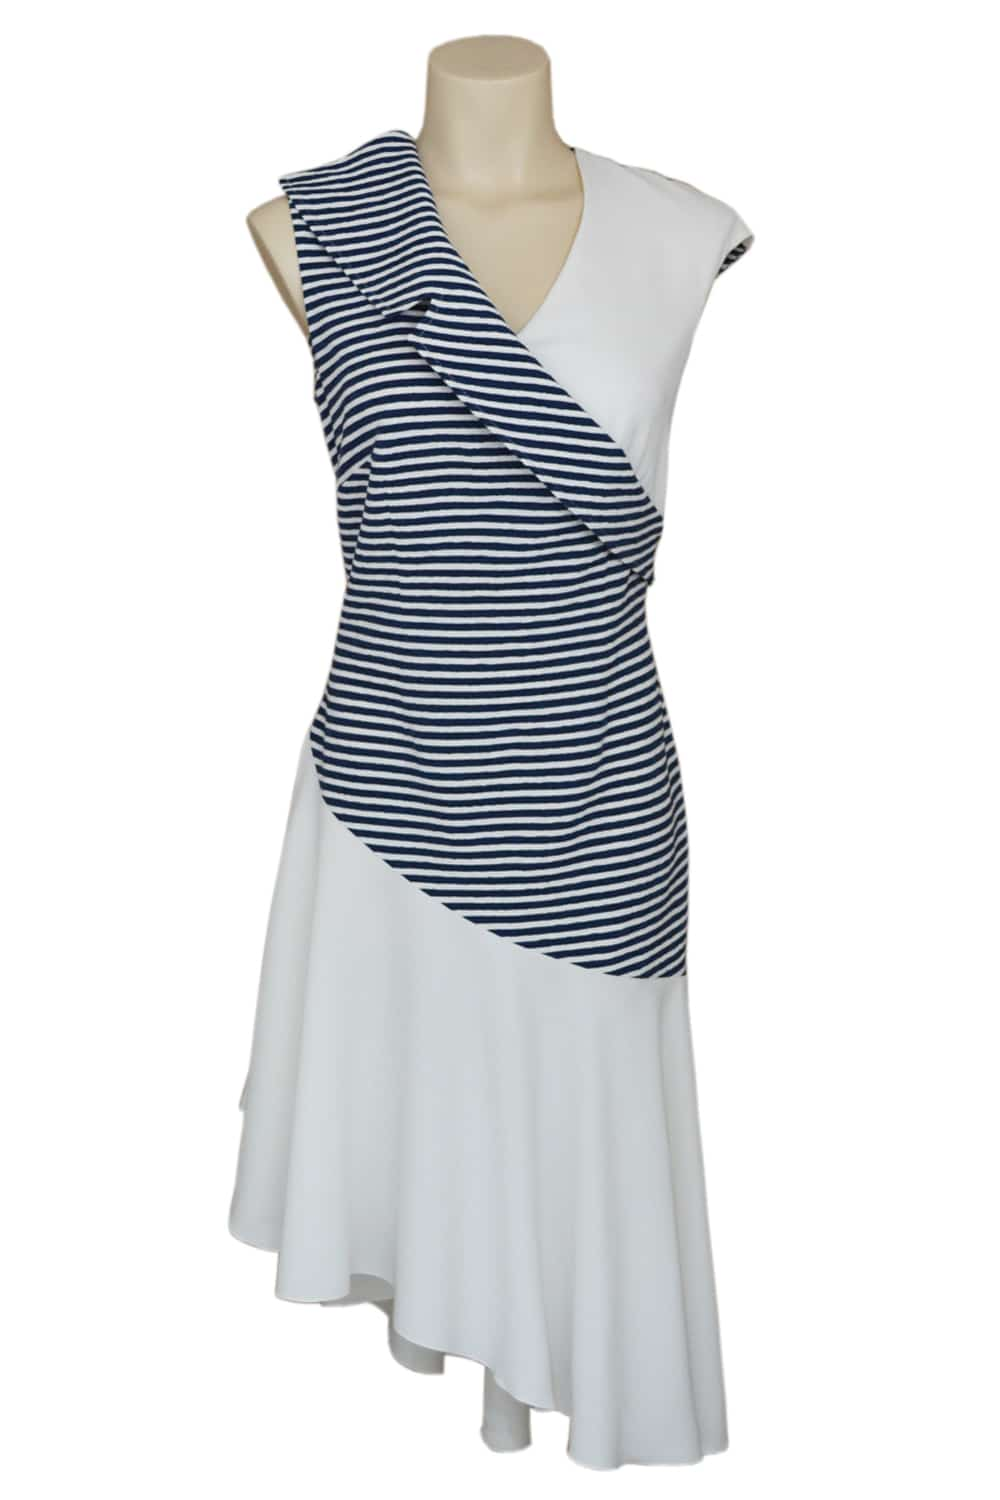 Parisian dress. Elegant and asymmetric dress in strech cotton and crepe blue and white.